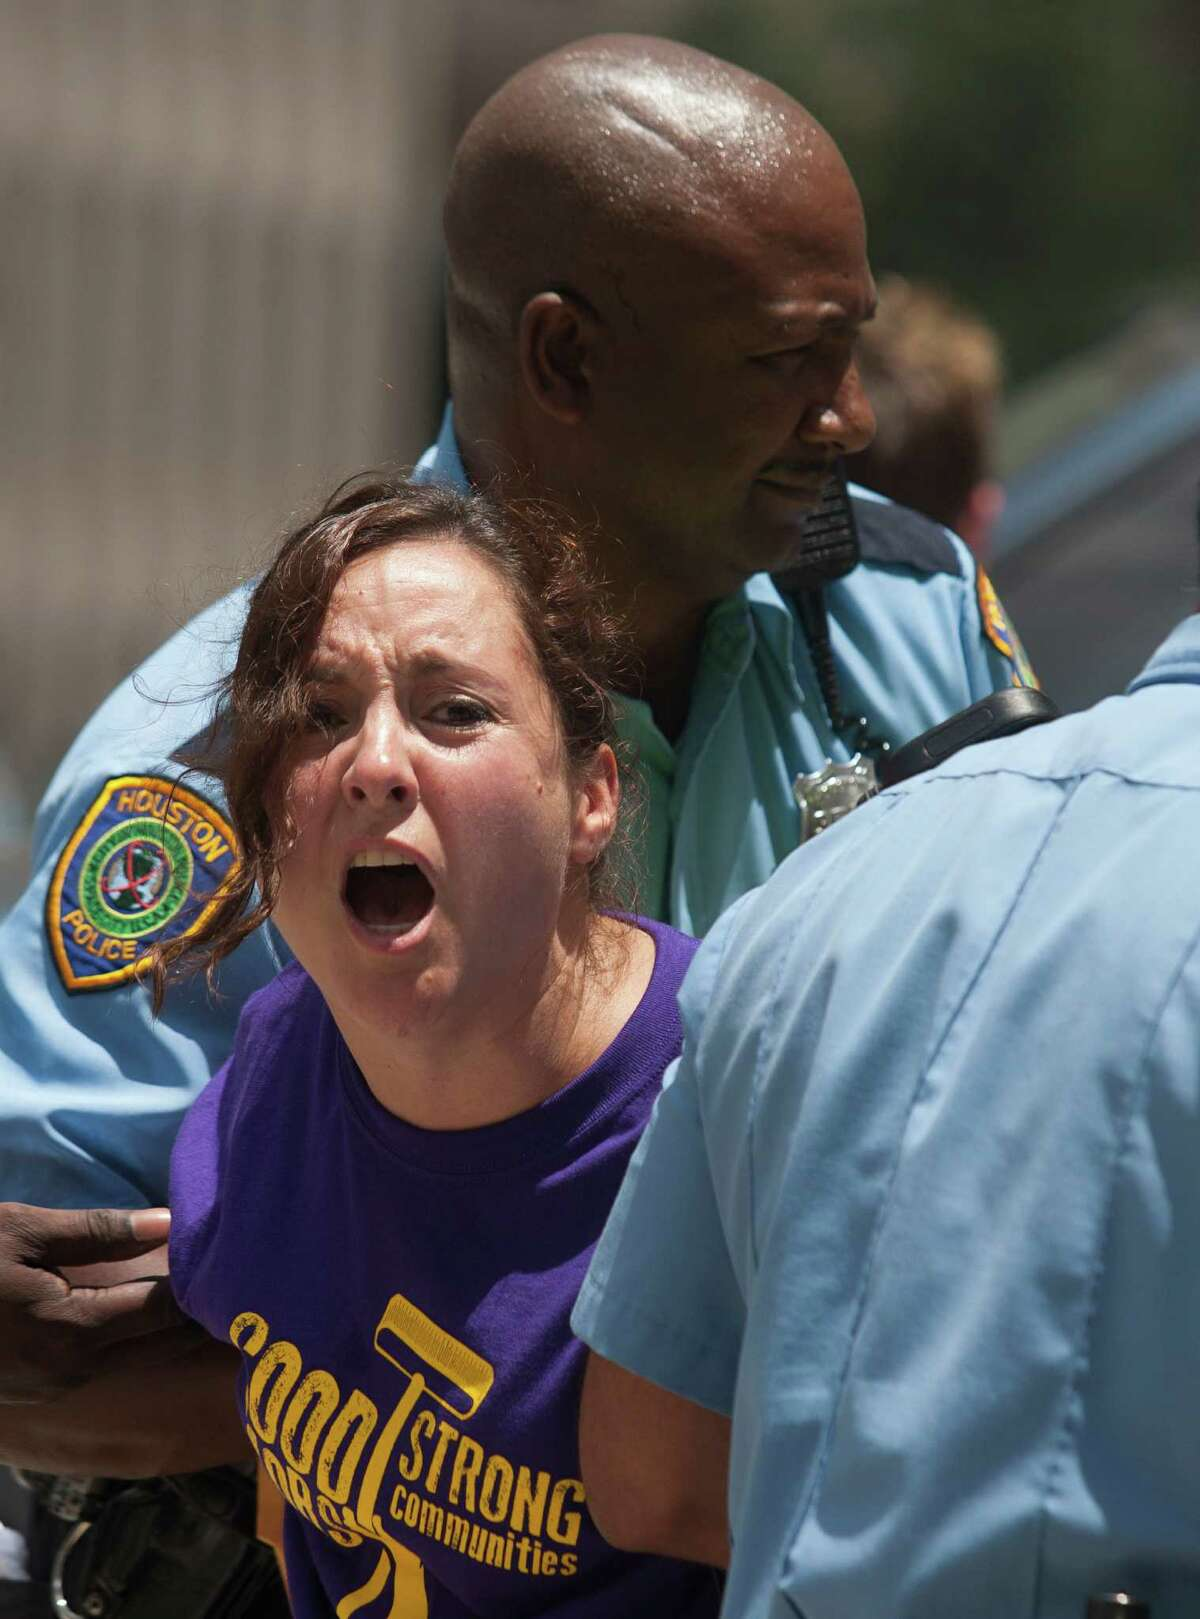 Police arrest a demonstrator on Wednesday in downtown Houston. A union spokeswoman called the civil disobedience a